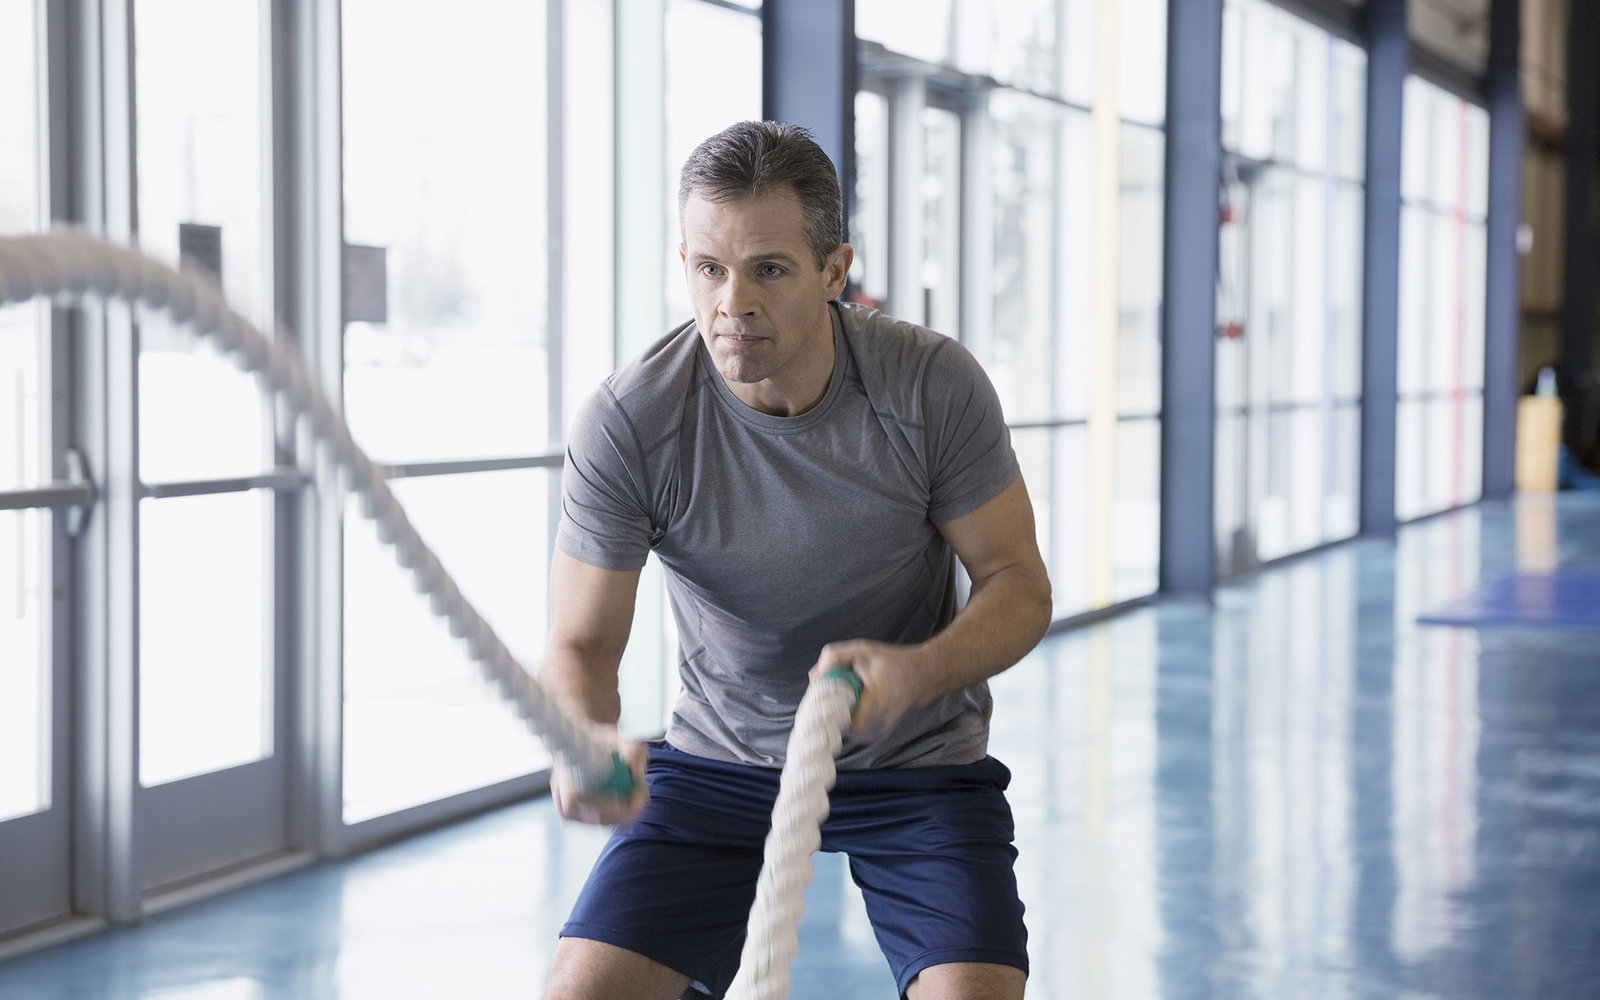 Man training with ropes at gym